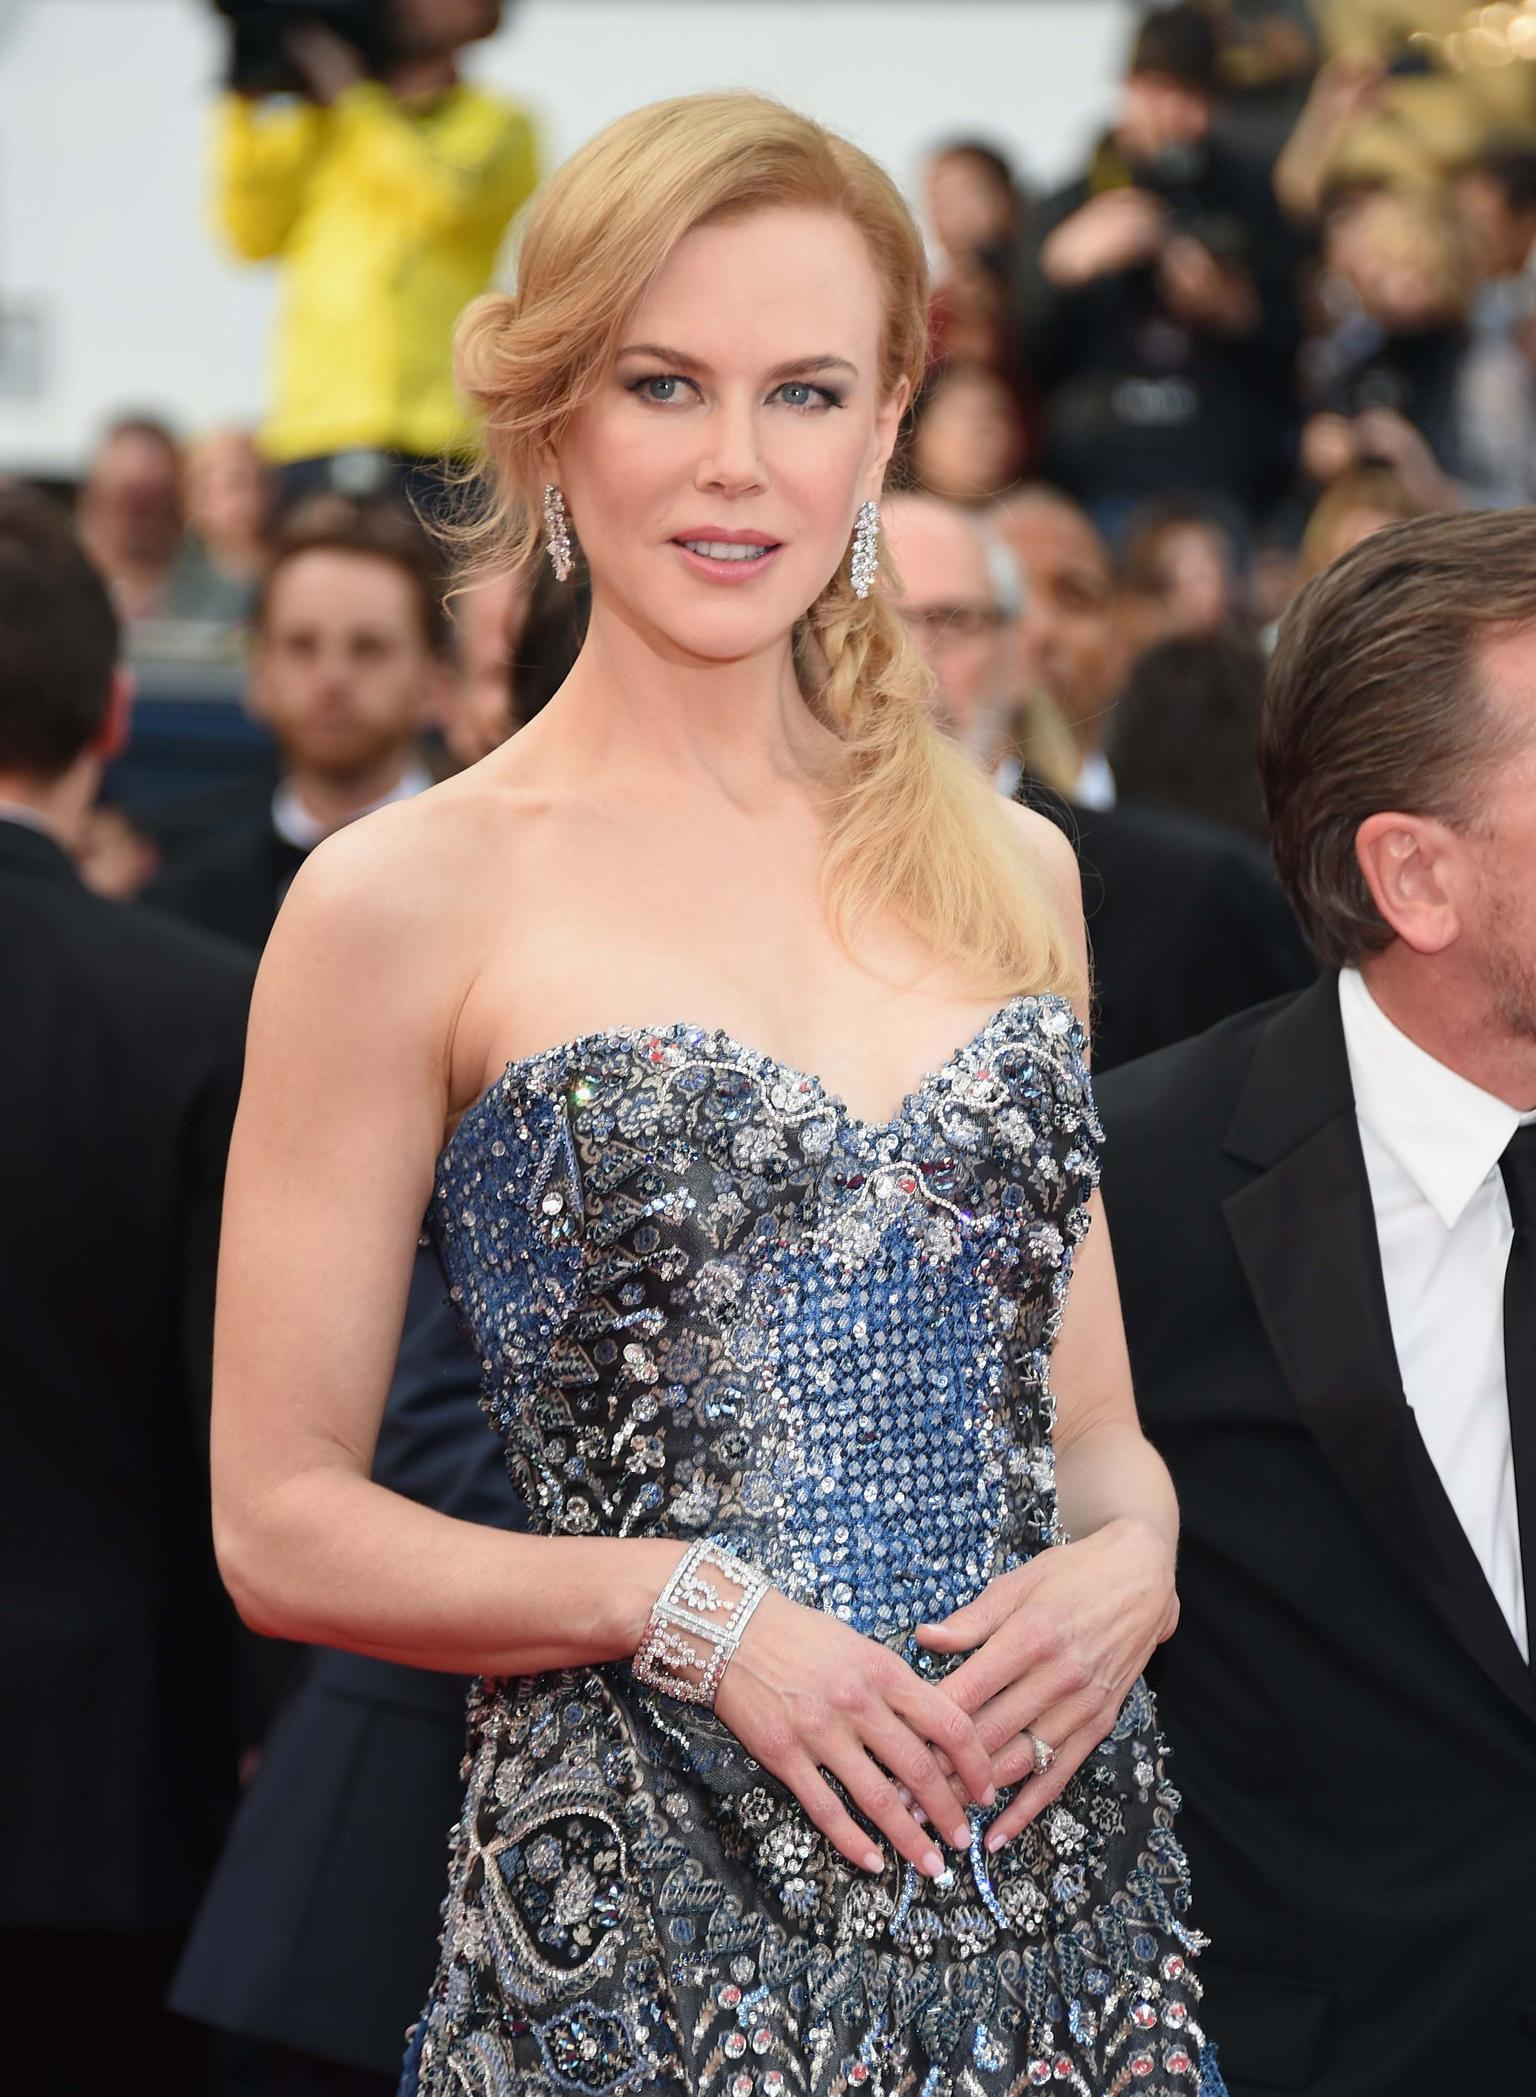 For the opening ceremony and premiere of 'Grace of Monaco' on the first day of the Cannes Film Festival 2014, Nicole Kidman chose a Harry Winston Caftan diamond bracelet and Winston Cluster Diamond Line earrings to complement her heavily embellished Arman